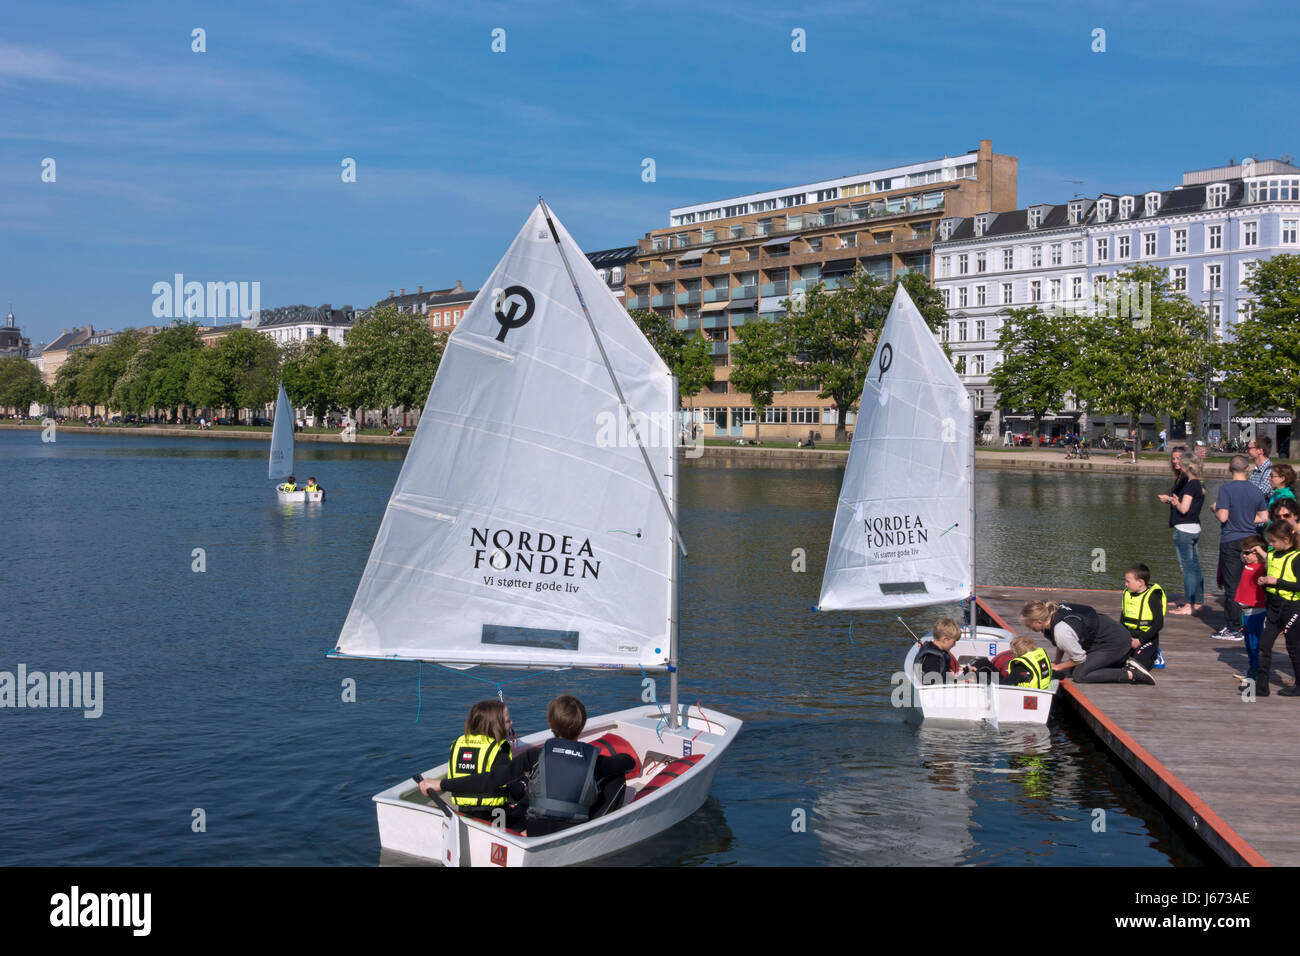 Junior sailors in optimist dinghies coached on the Peblinge Lake in central Copenhagen on a sunny afternoon in early - Stock Image